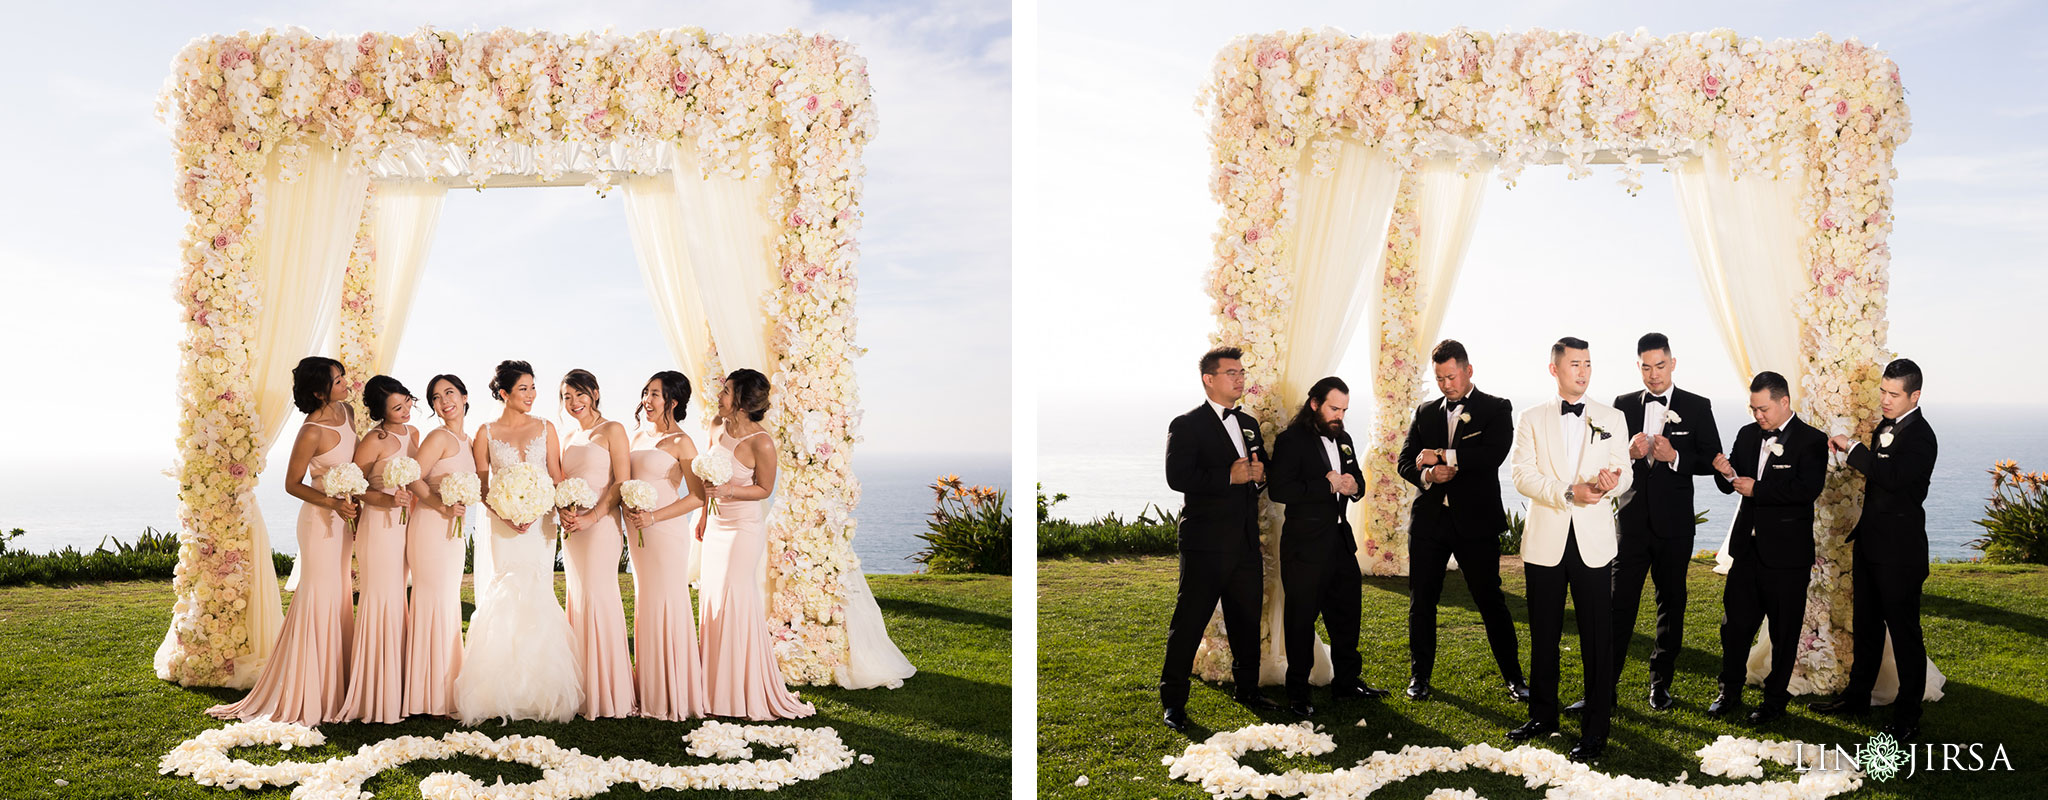 27 ritz carlton laguna niguel wedding party photography